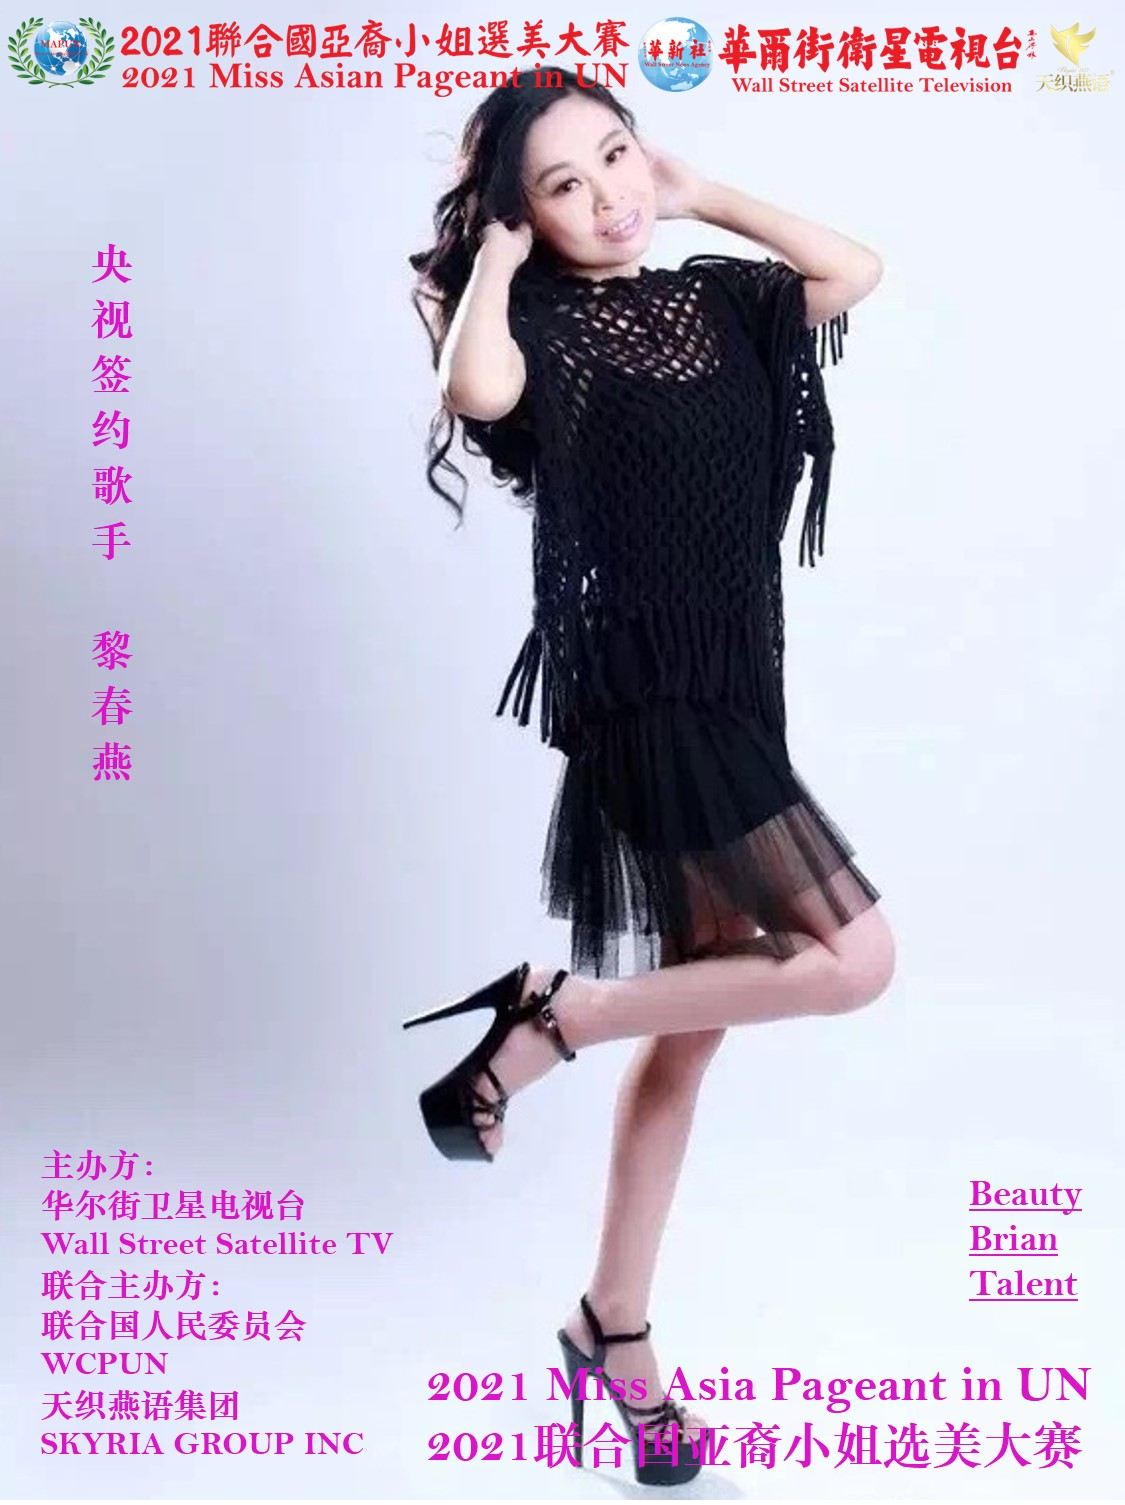 Li Chunyan Photo 02